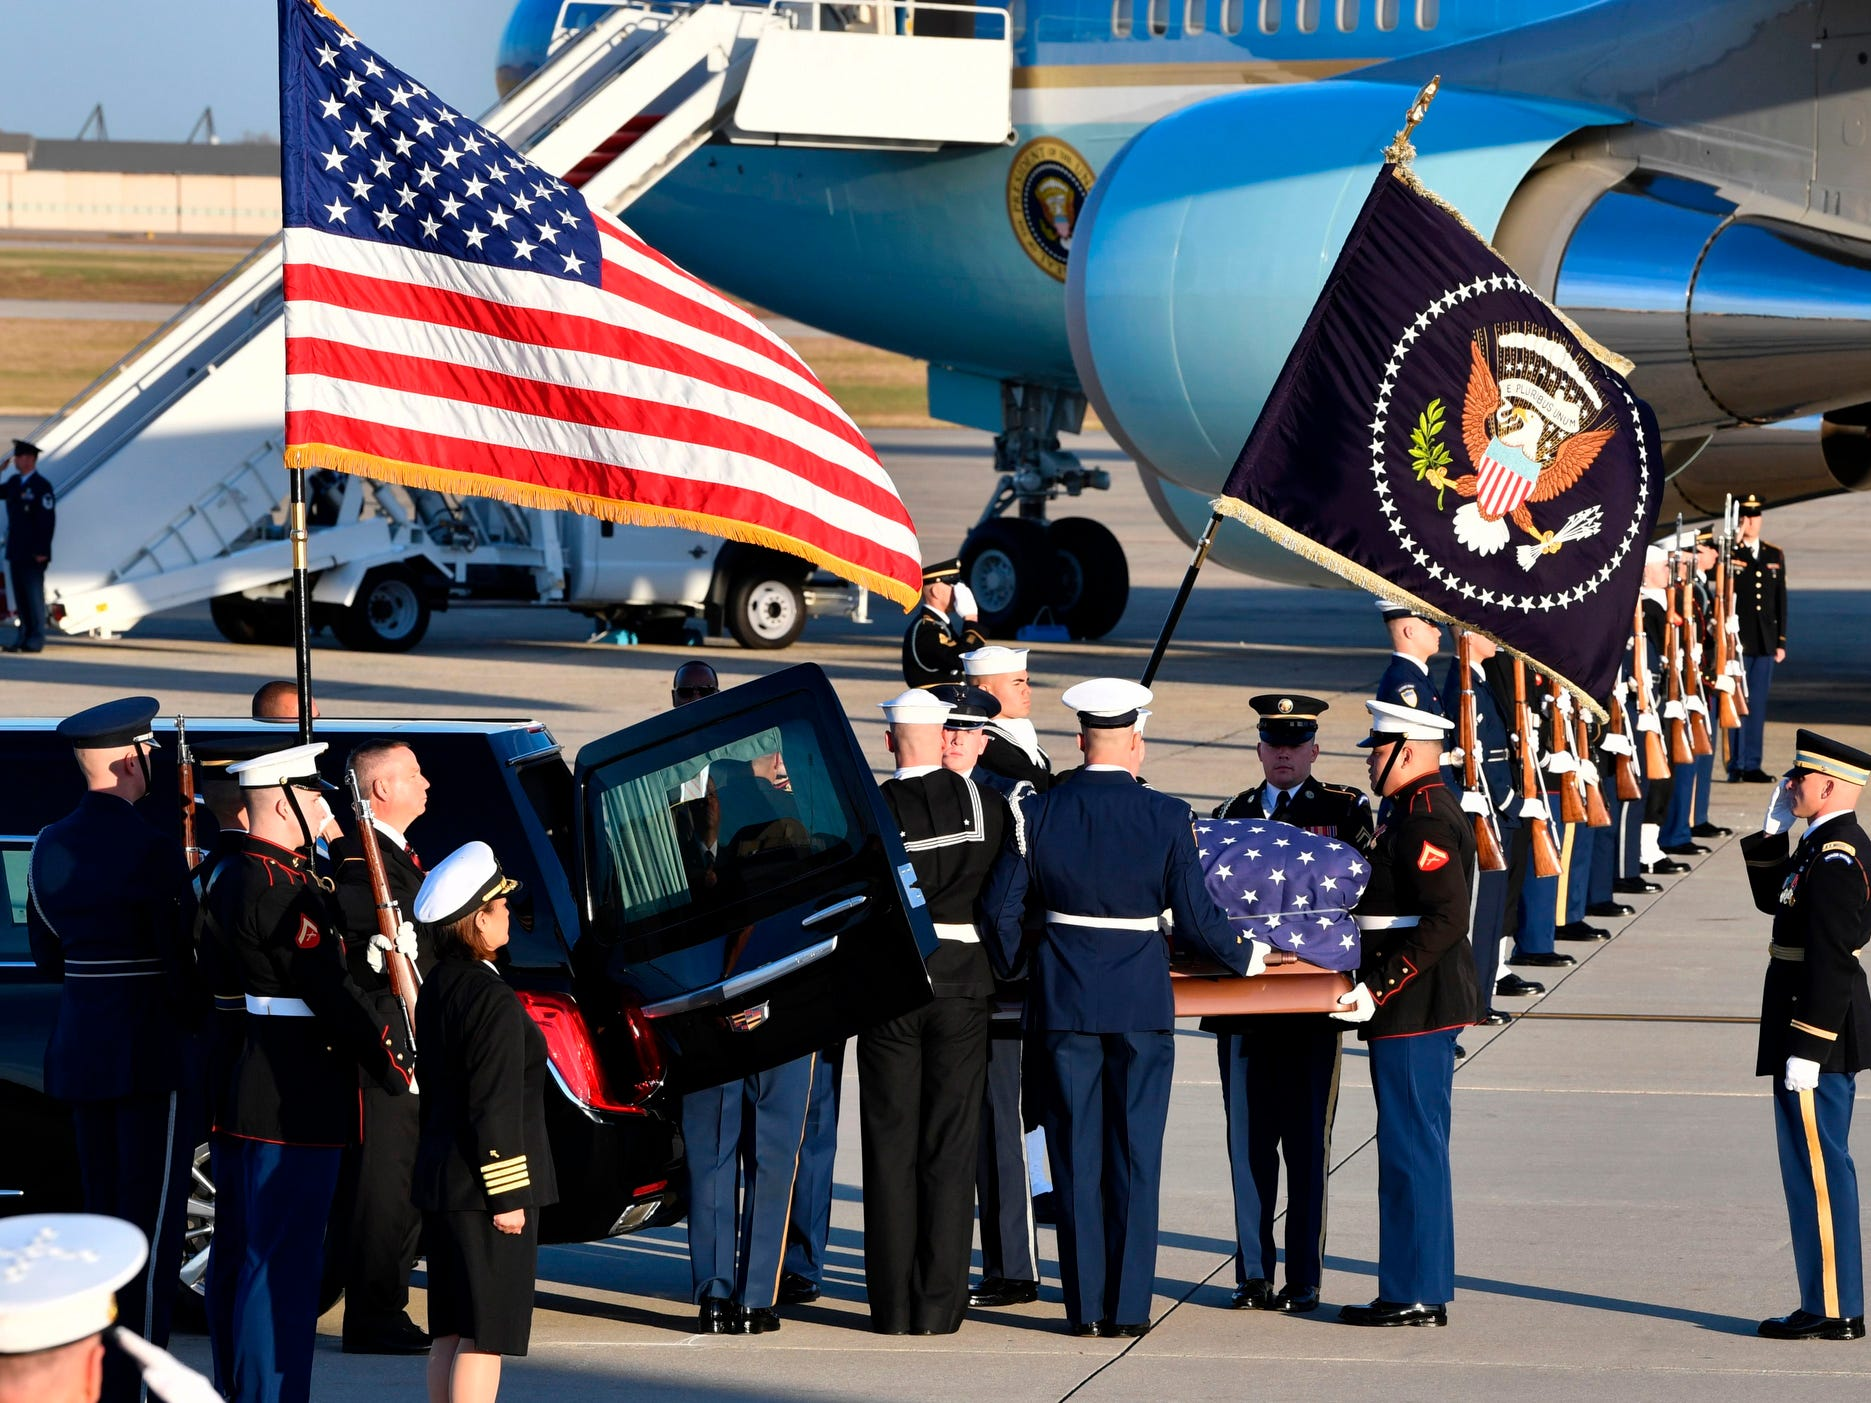 The flag-draped casket of former President George H.W. Bush is carried by a joint services military honor guard to the hearse at Joint Base Andrews.